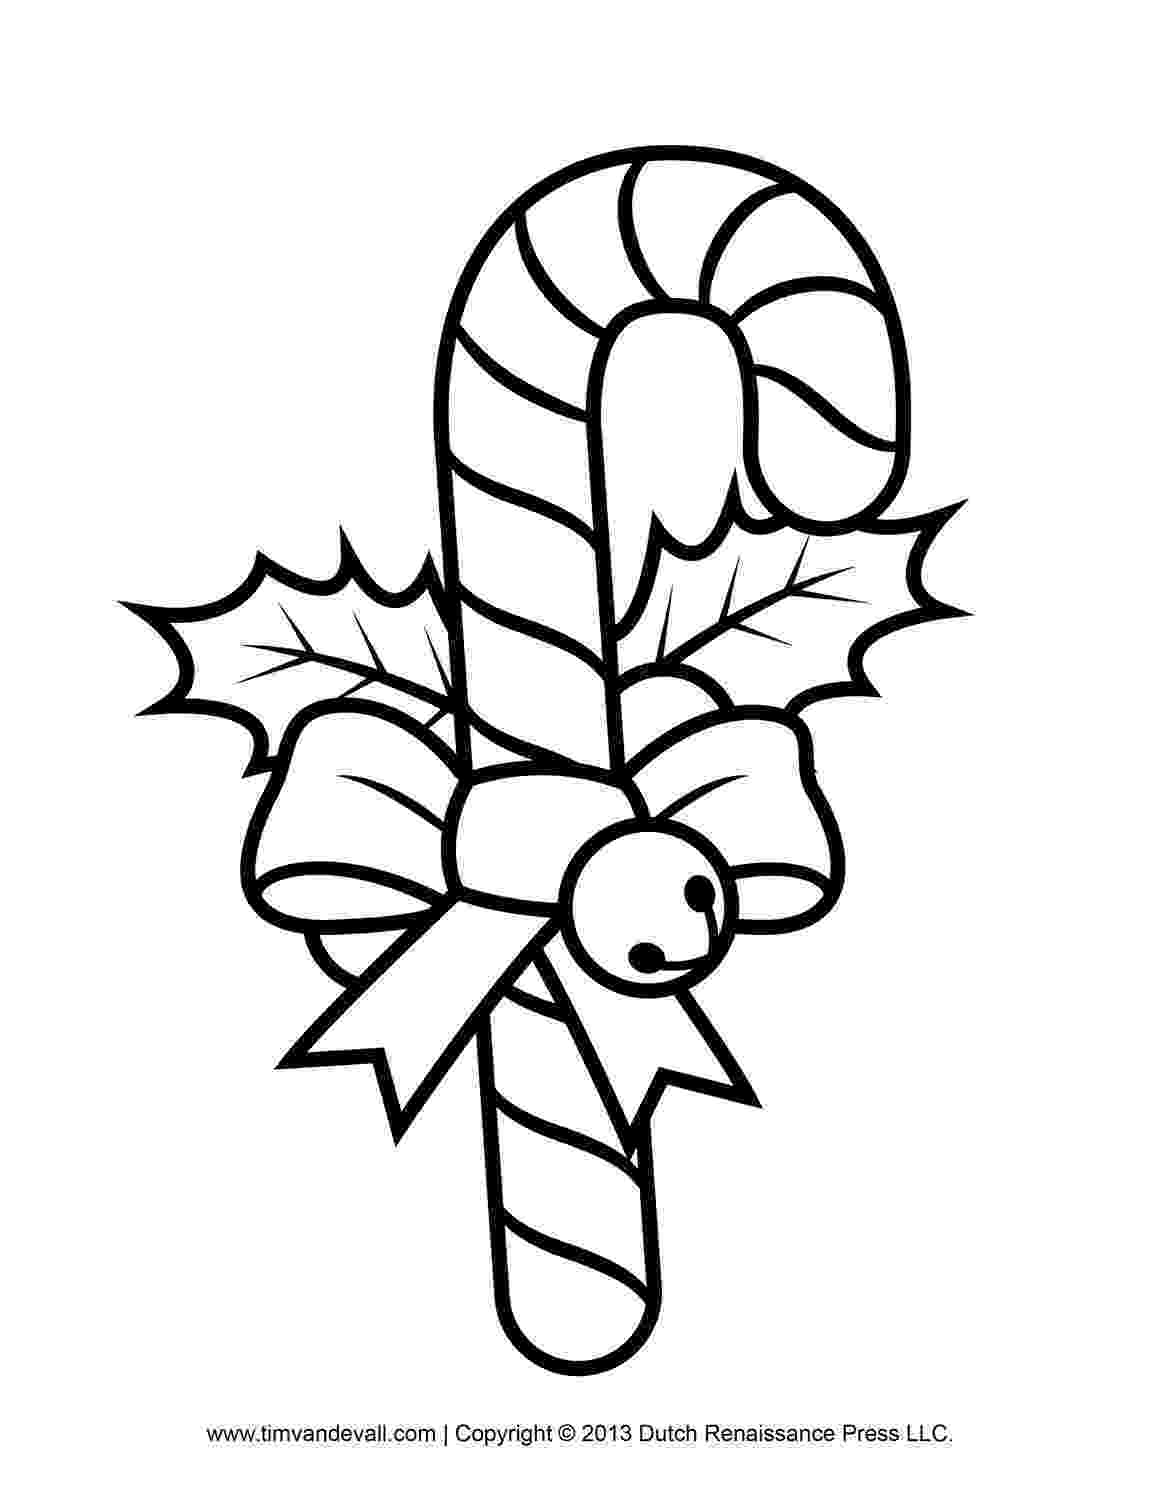 black and white colouring pages free candy cane template printables clip art decorations black white and pages colouring